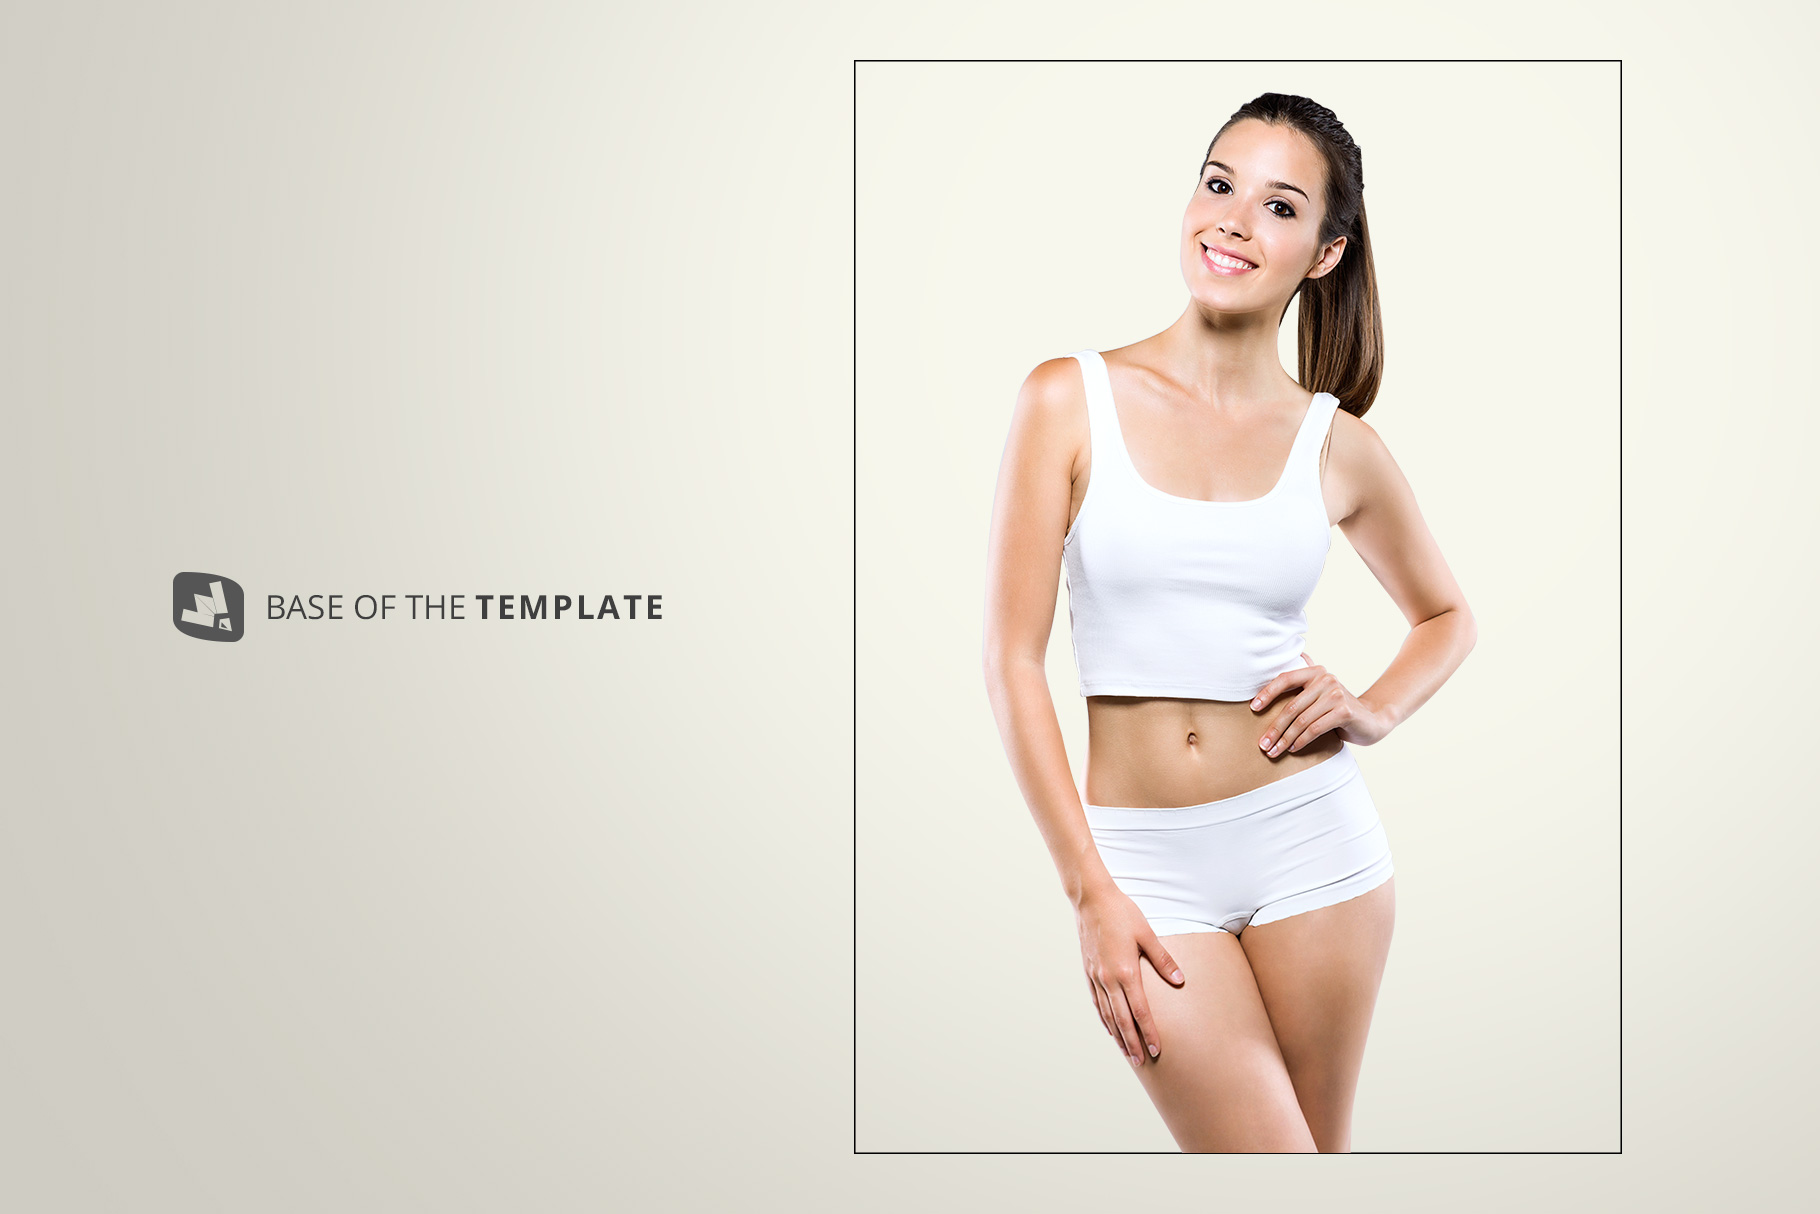 base image of the female short workout outfit mockup